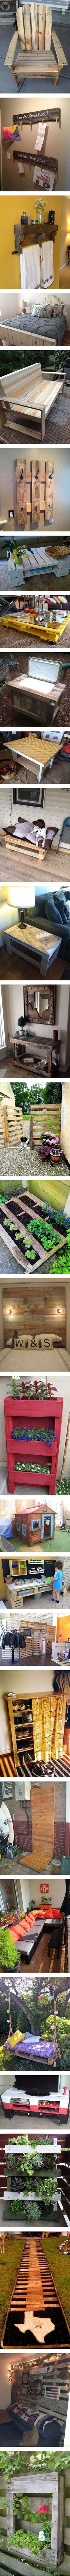 Why go out and spend money on new furniture when you can simply make your own!  Here we have 30 furniture ideas you can make yourself from pallets.  You don't need to be an experienced at woodworking to make these, you just need a few pallets, some tools, and a little time.